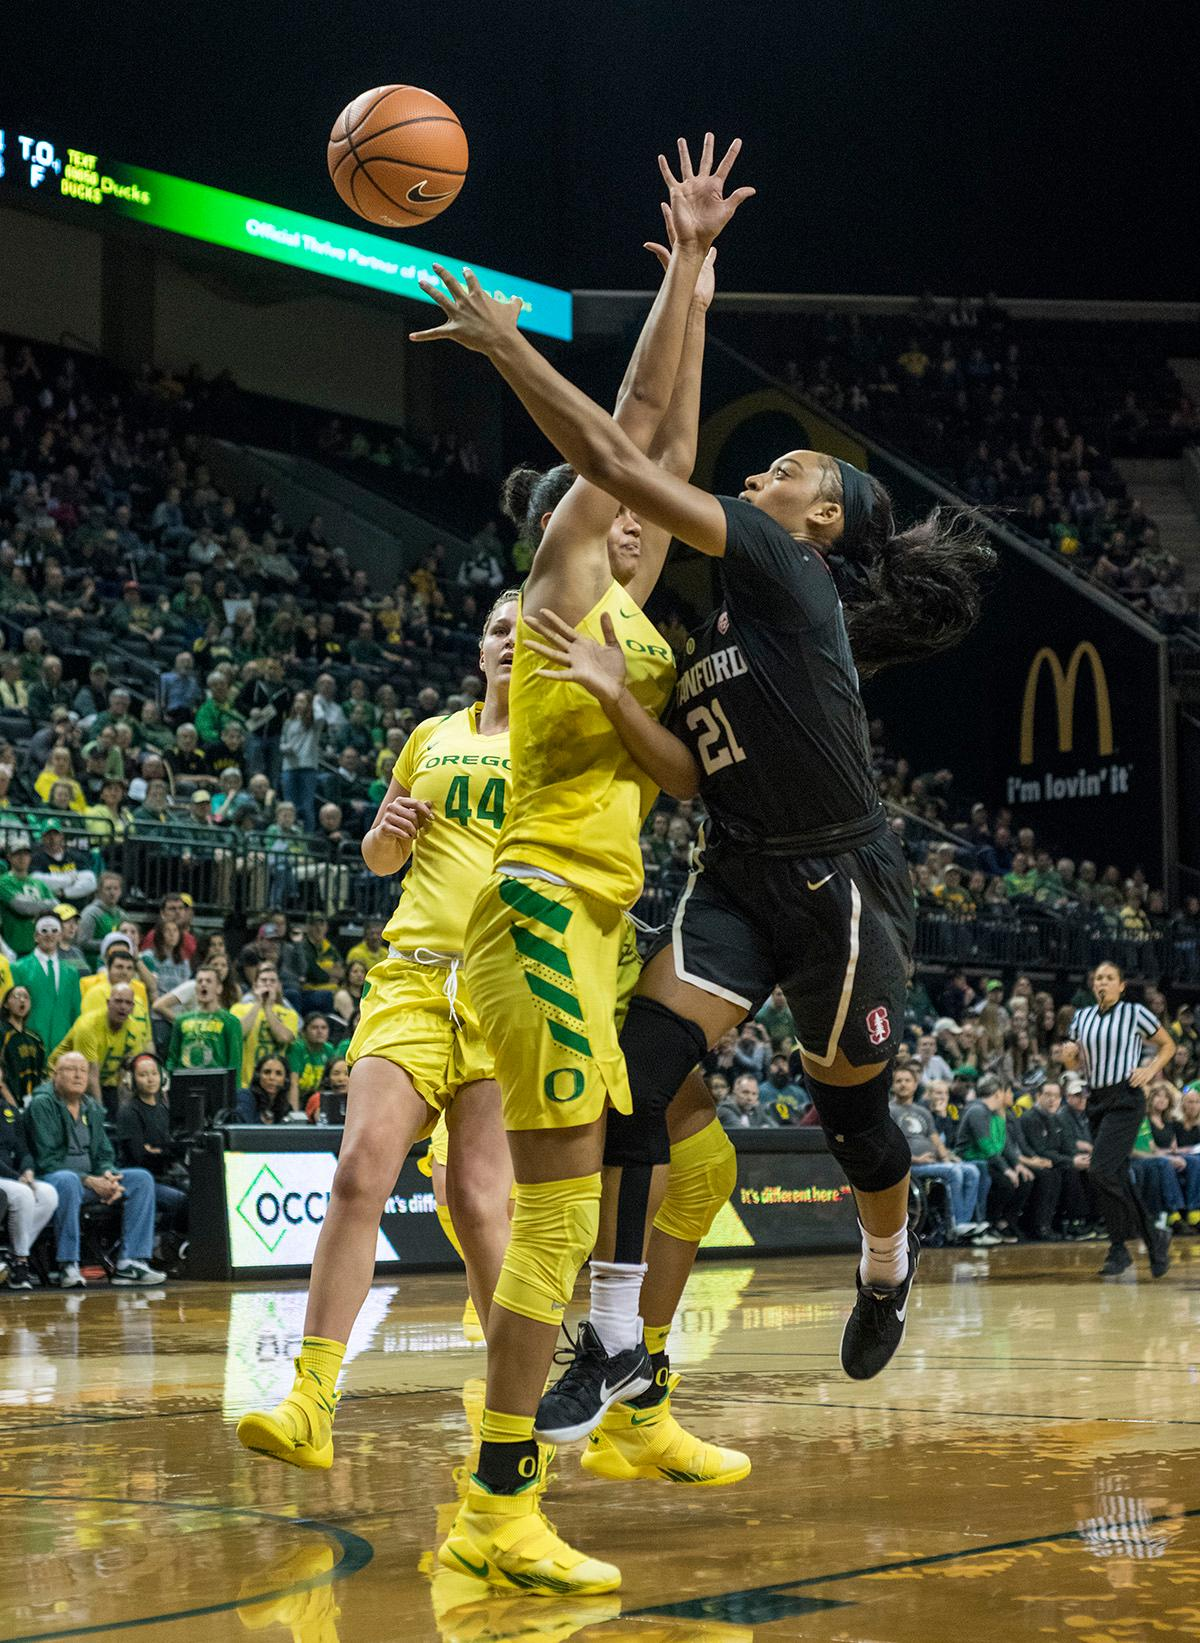 Stanford Cardinal DiJonai Carrington (#21) aims for the basket as Oregon Ducks Satou Sabally (#0) attempts to block the shot. The Stanford Cardinal defeated the Oregon Ducks 78-65 on Sunday afternoon at Matthew Knight Arena. Stanford is now 10-2 in conference play and with this loss the Ducks drop to 10-2. Leading the Stanford Cardinal was Brittany McPhee with 33 points, Alanna Smith with 14 points, and Kiana Williams with 14 points. For the Ducks Sabrina Ionescu led with 22 points, Ruthy Hebard added 16 points, and Satou Sabally put in 14 points. Photo by Rhianna Gelhart, Oregon News Lab